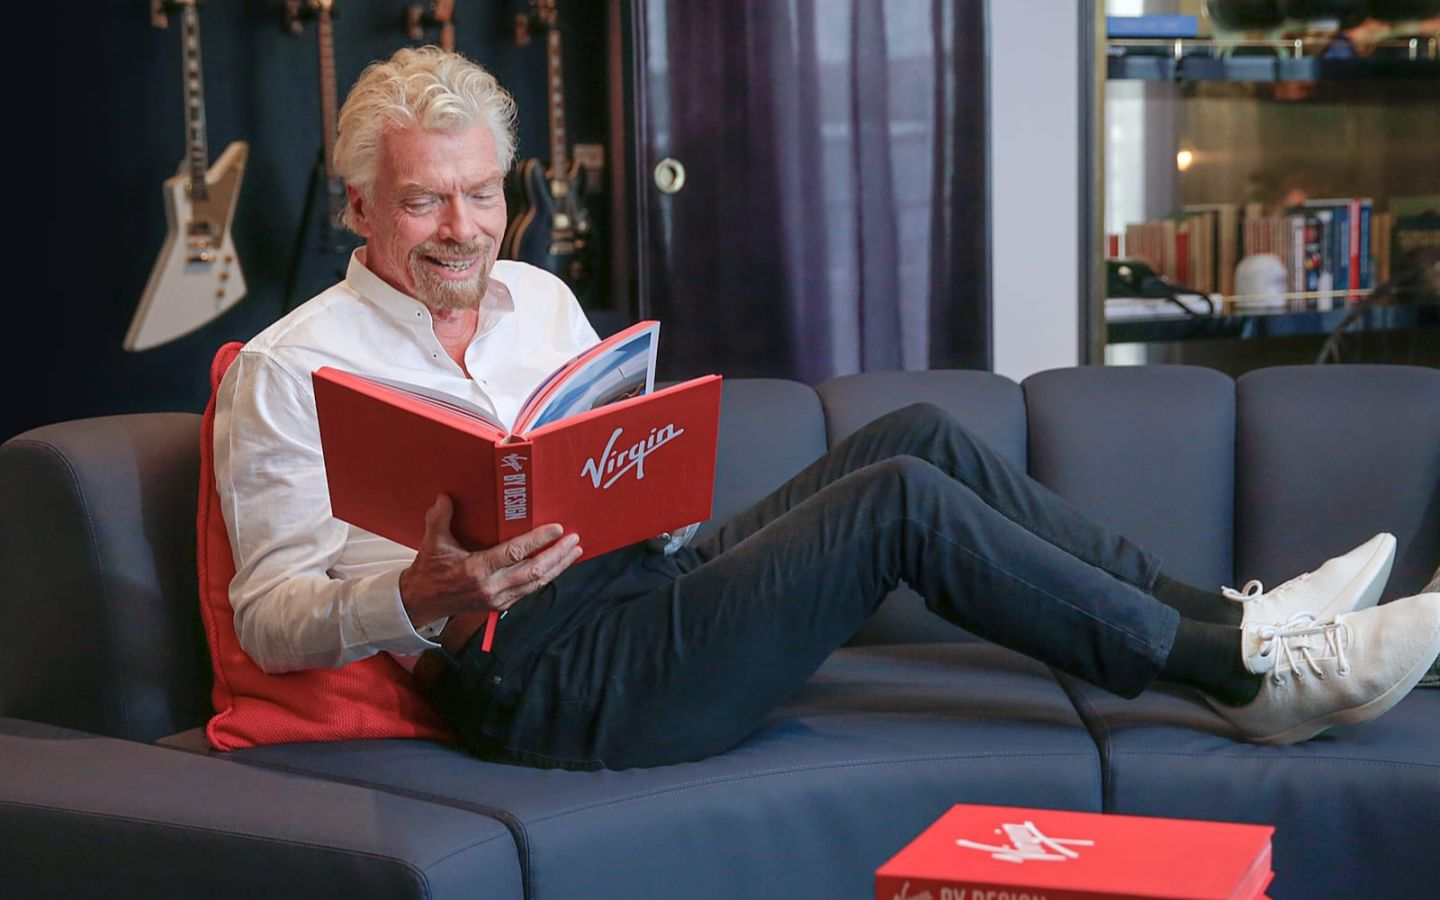 Richard Branson relaxing on a sofa reading a copy of Virgin By Design